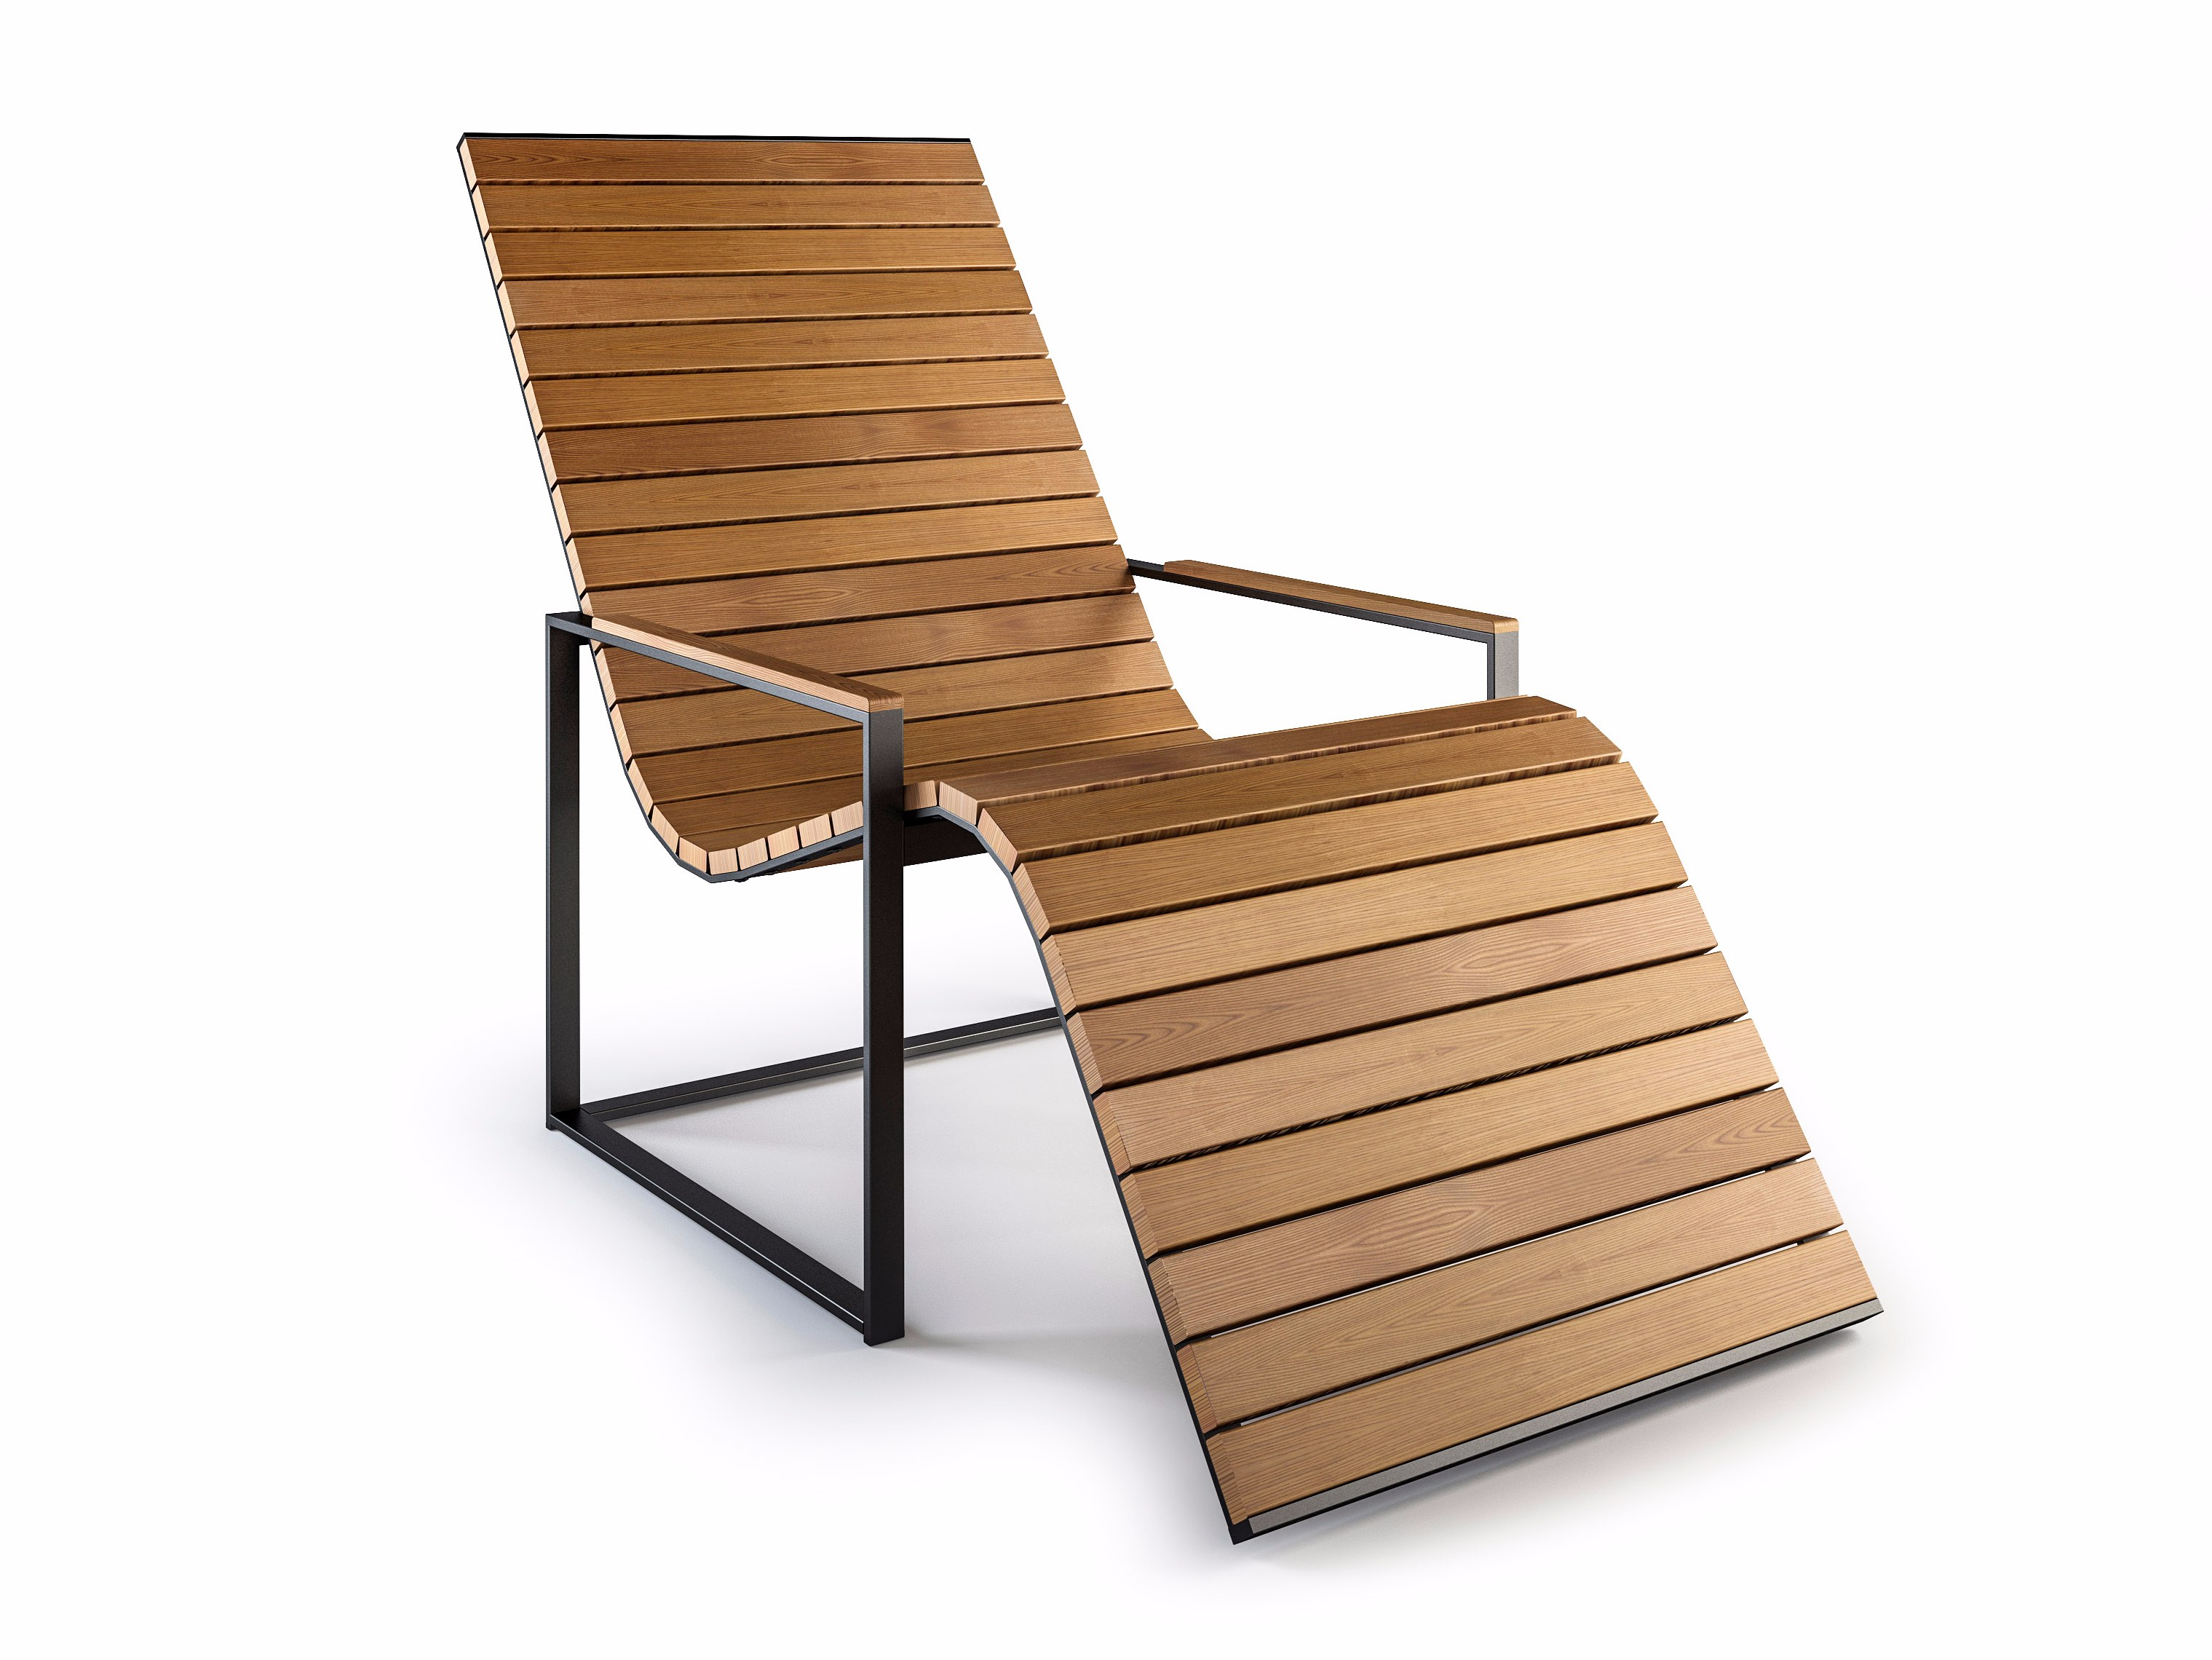 Wooden deck chairs - Wooden Deck Chairs 7